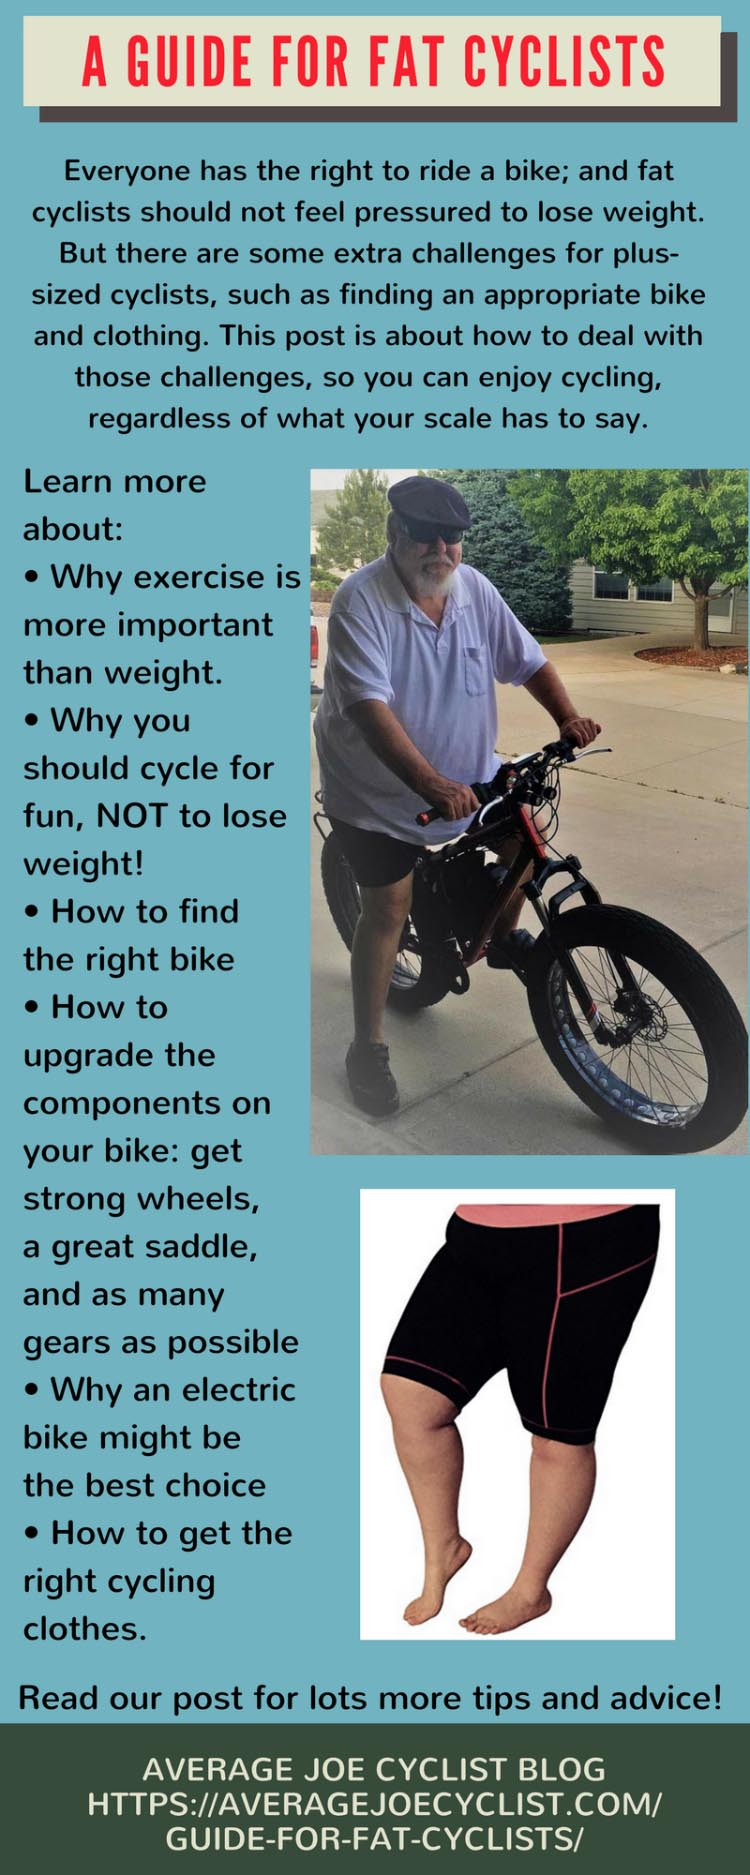 A Guide for Fat Cyclists